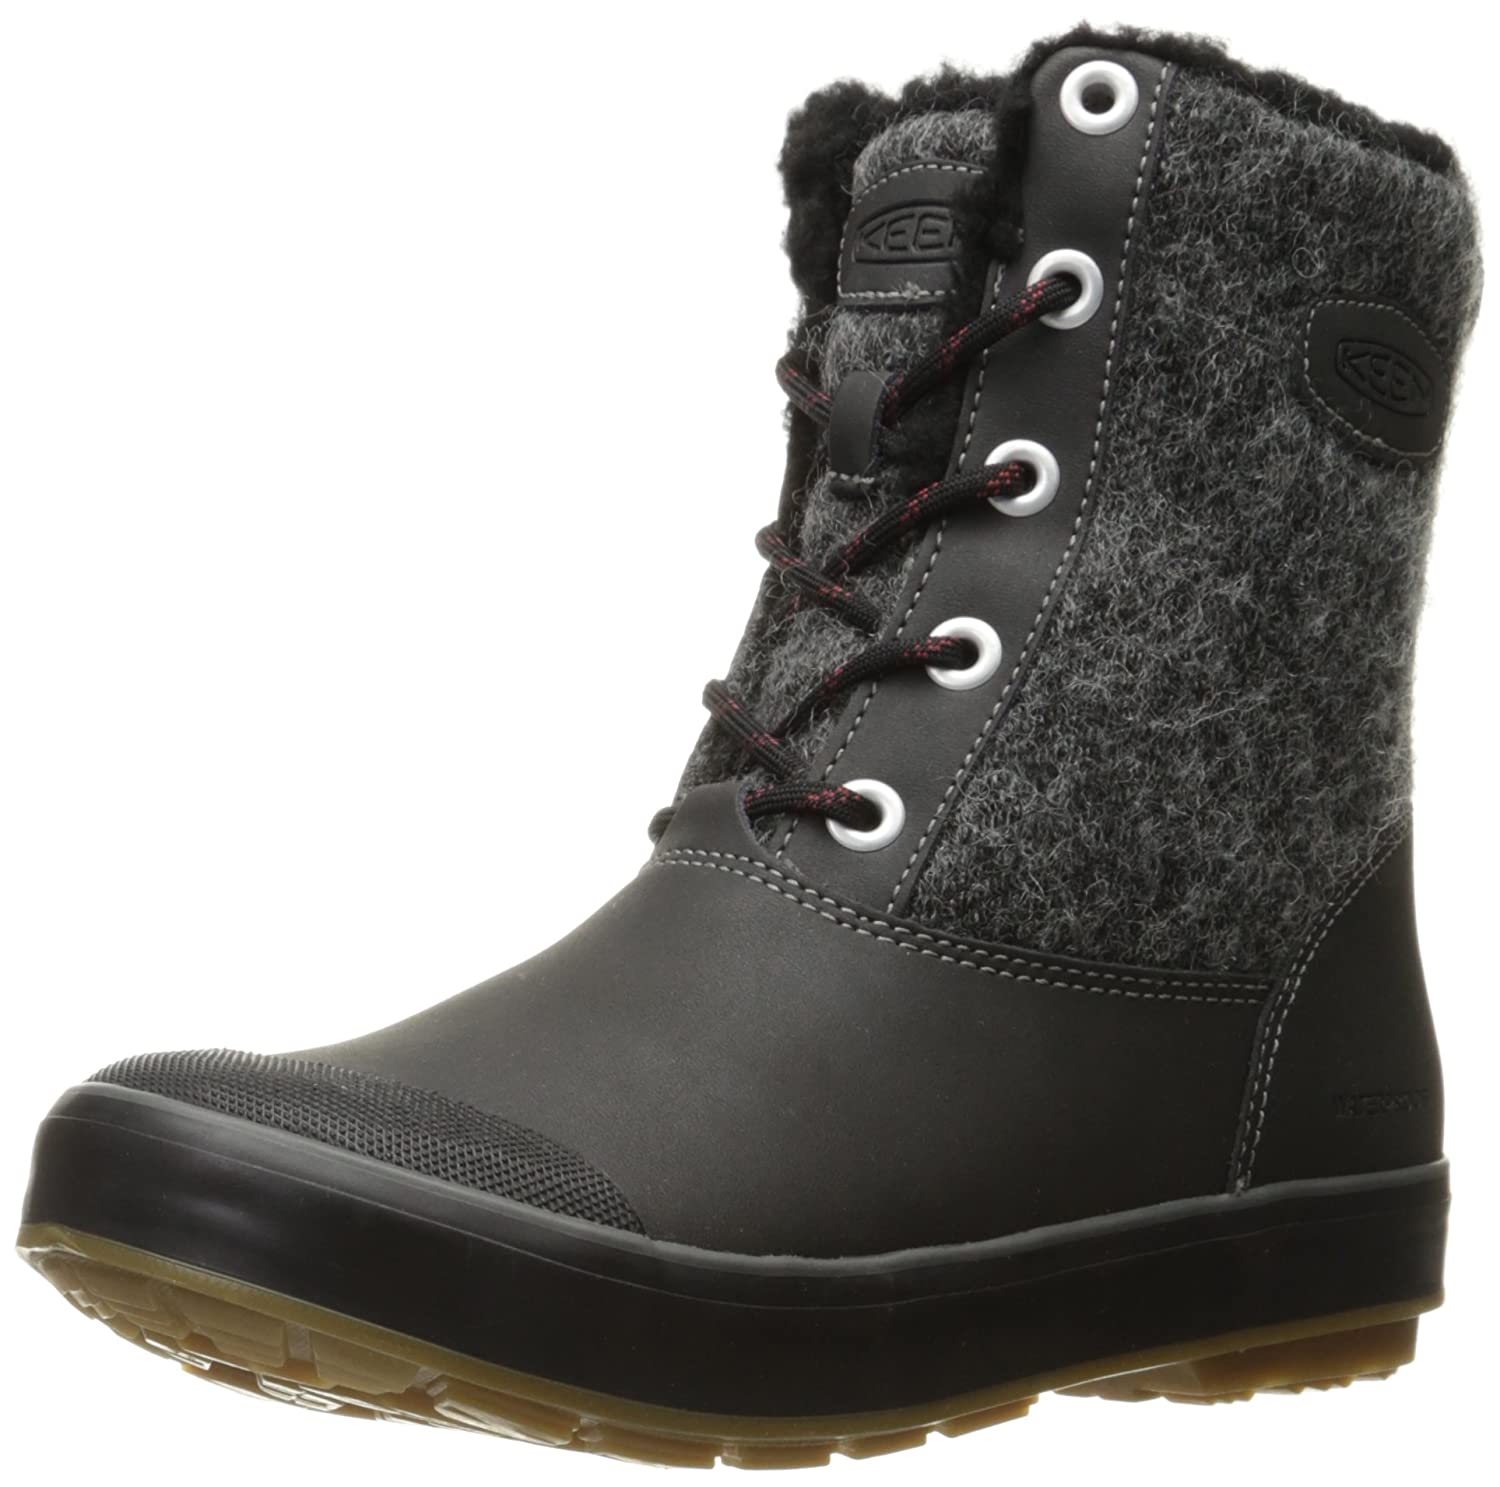 KEEN Women's Elsa Waterproof Winter Boot B01MSND19K 9.5 B(M) US|Black Wool